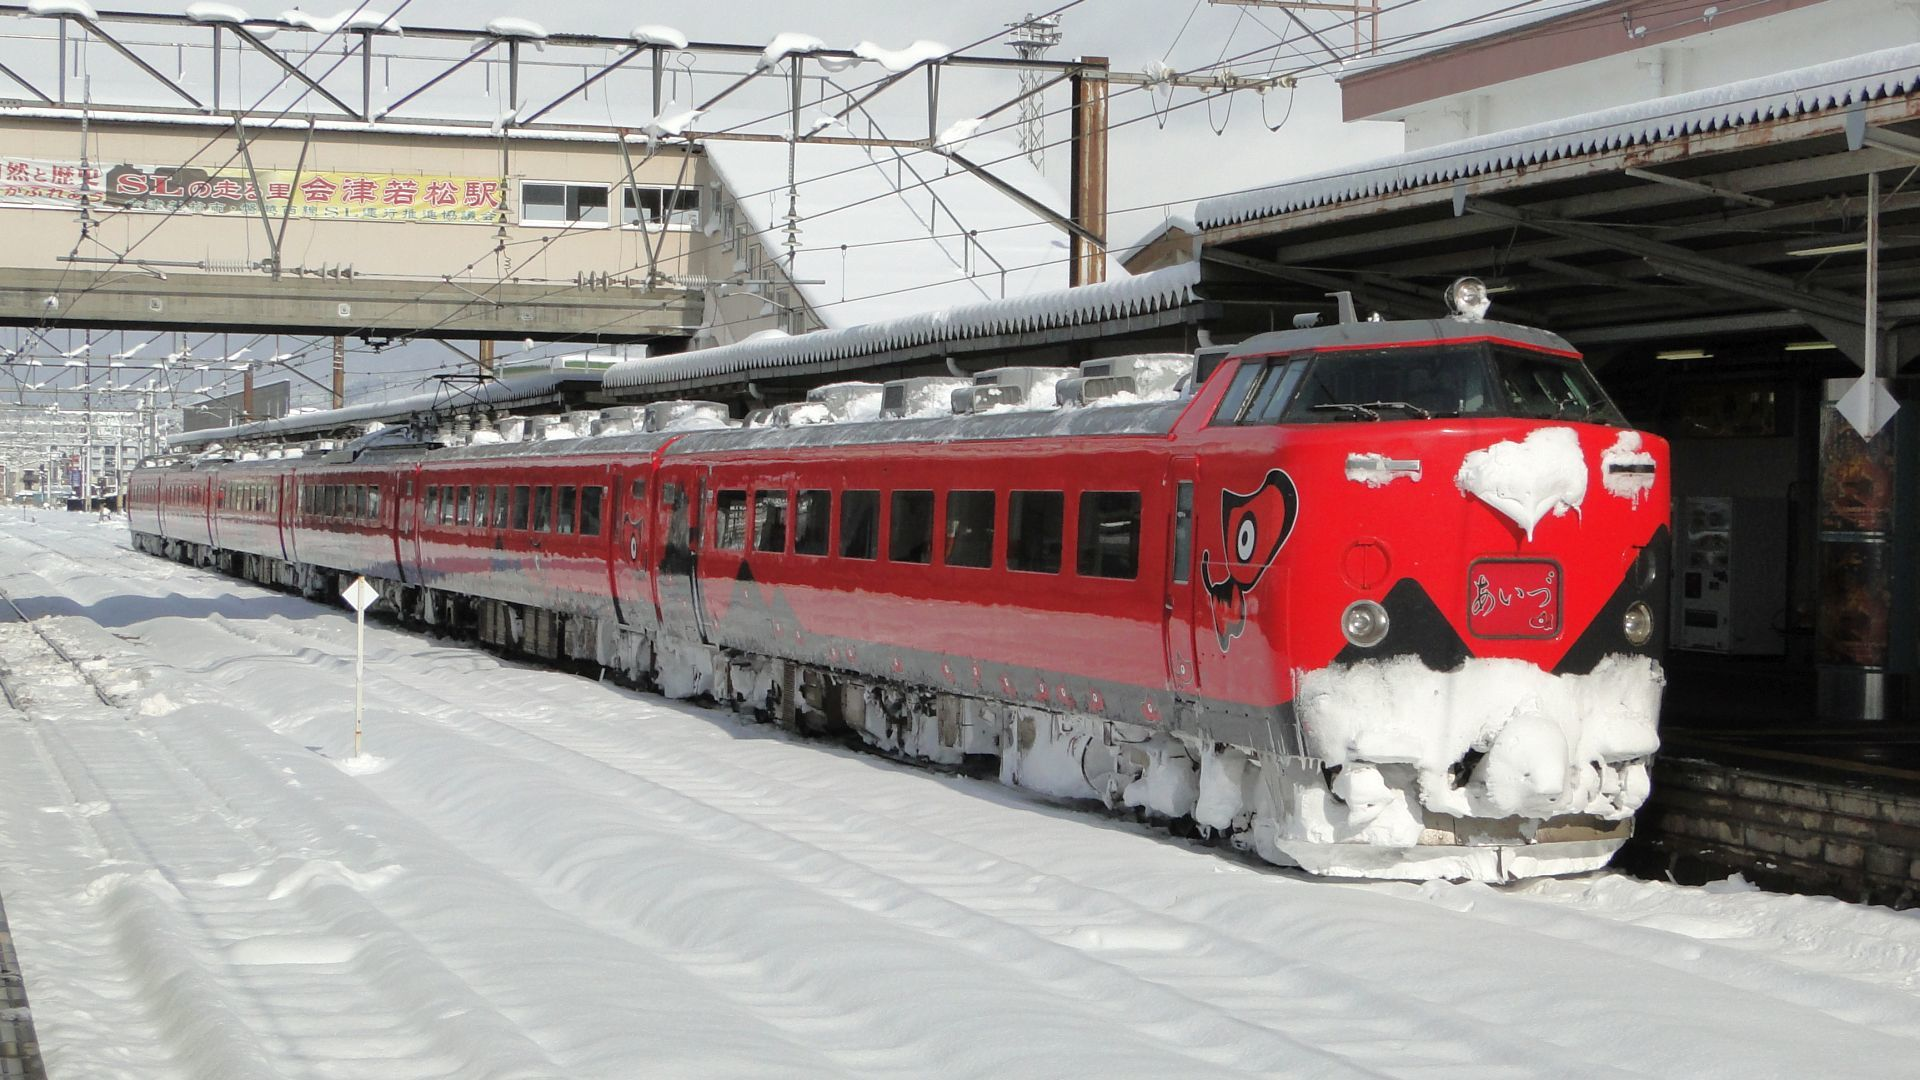 winter snow Station trains HD Wallpaper